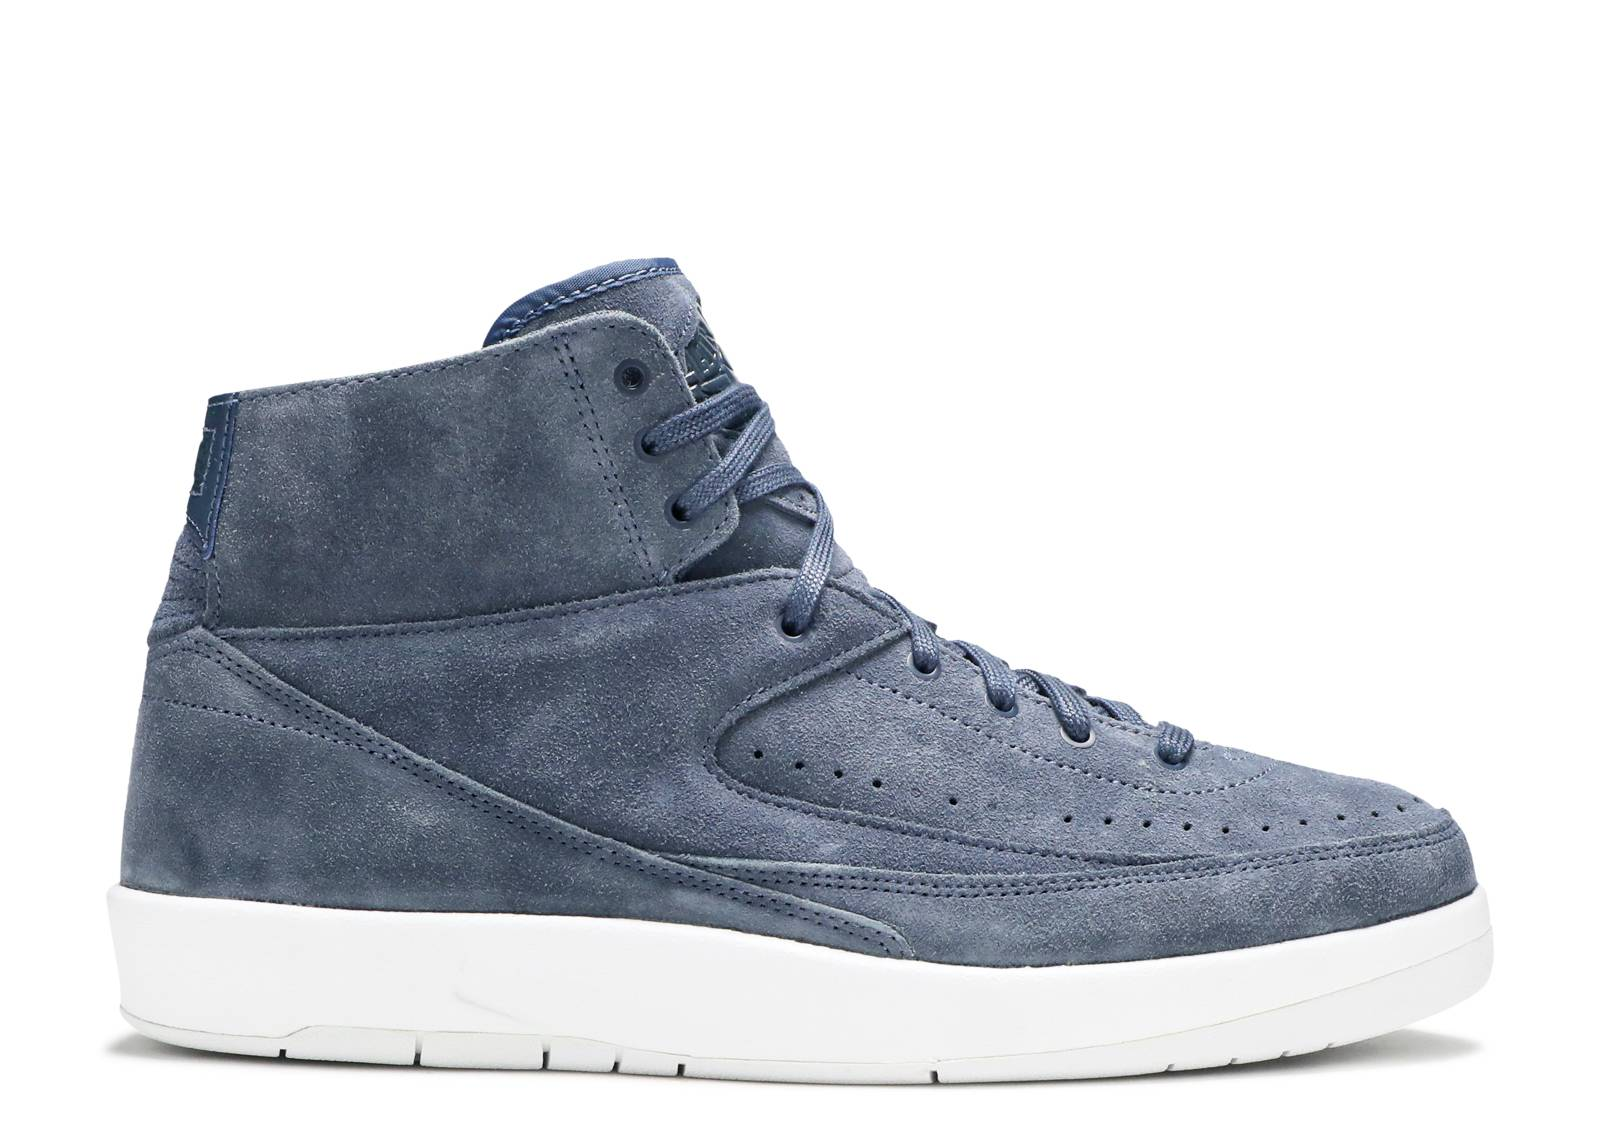 0941b5f8eb9 Air Jordan 2 Retro Decon - Air Jordan - 897521 402 - thunder blue ...